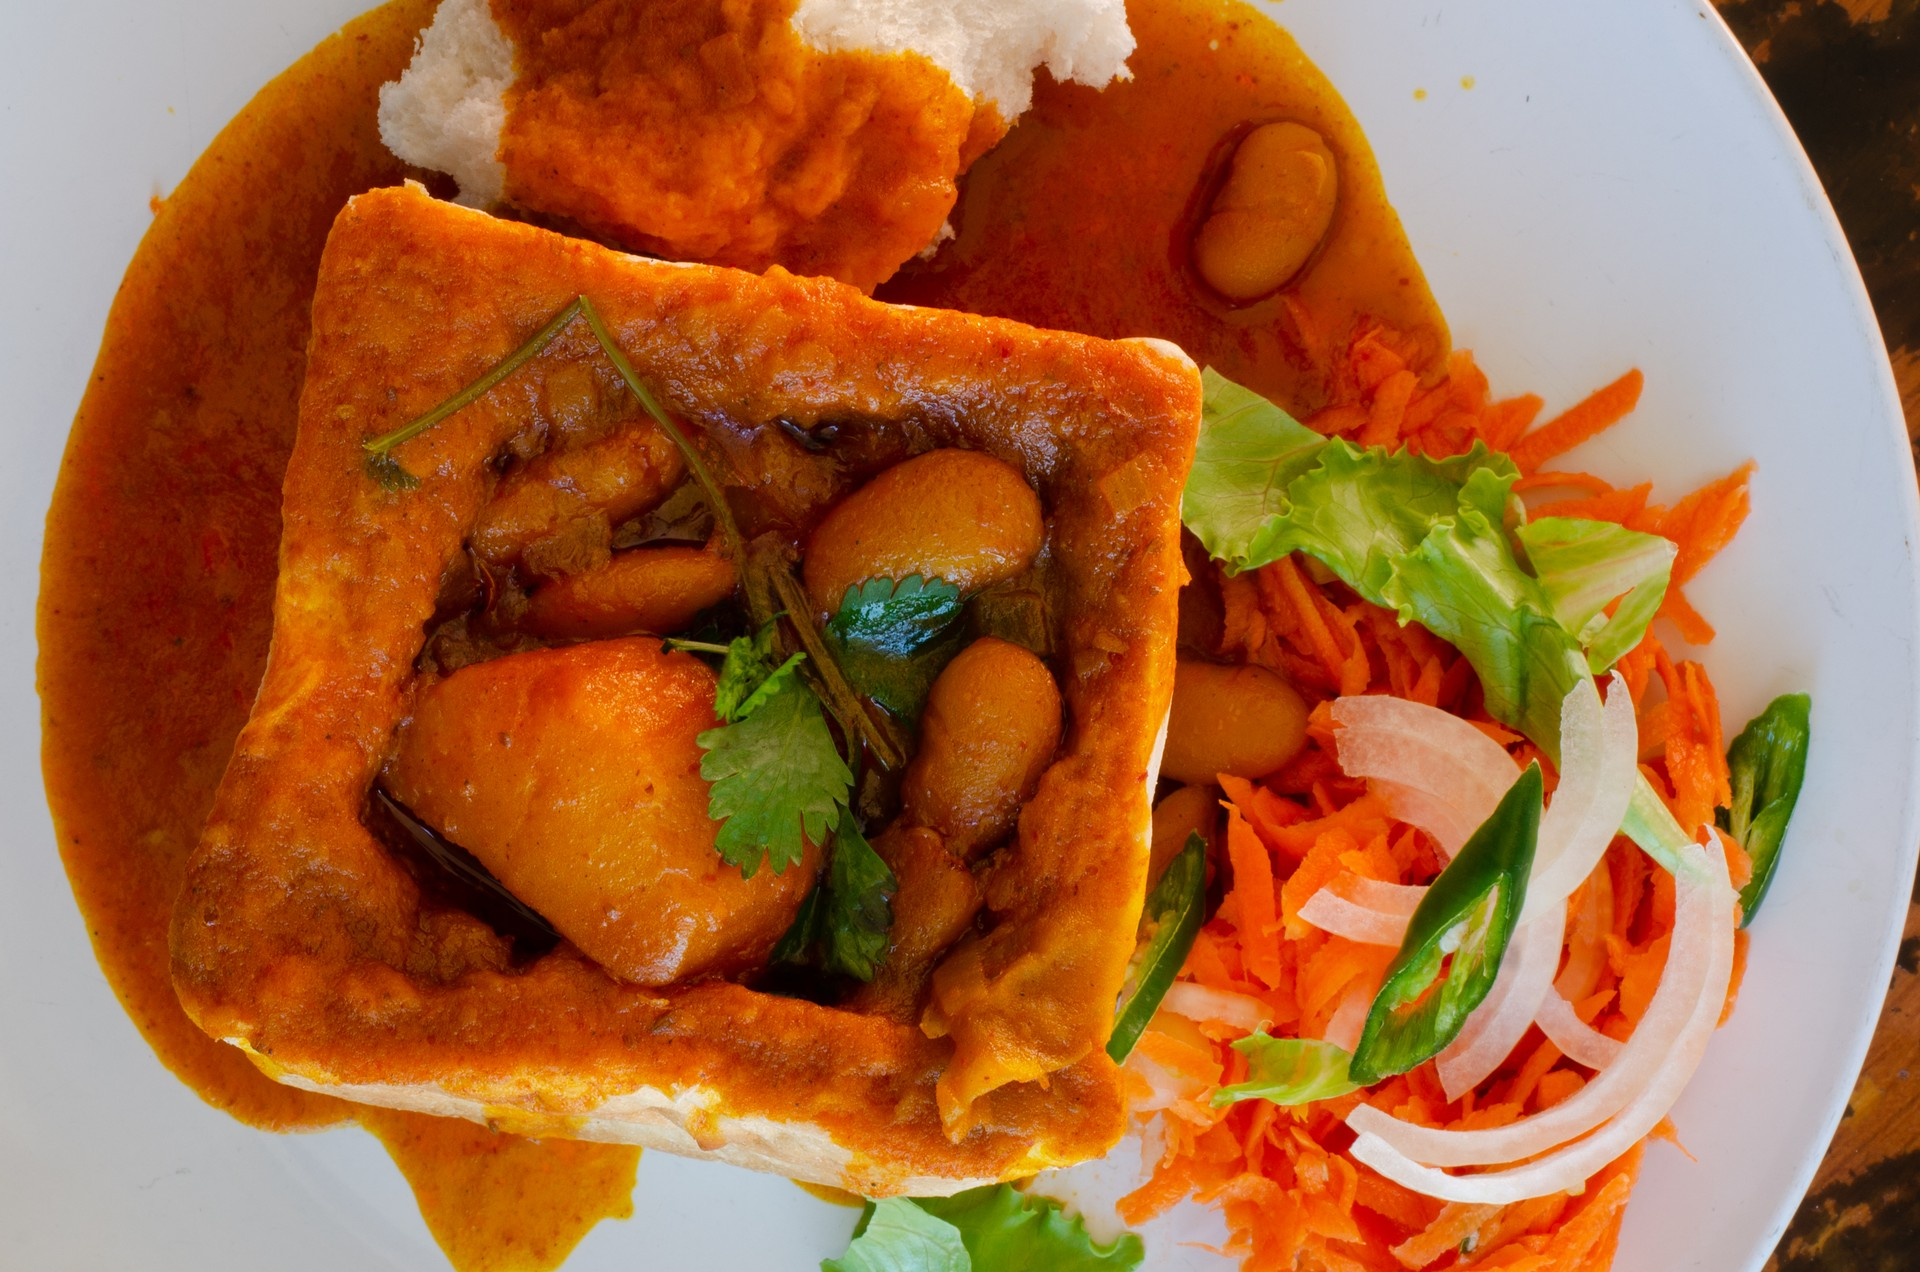 Bunny chow in Durban